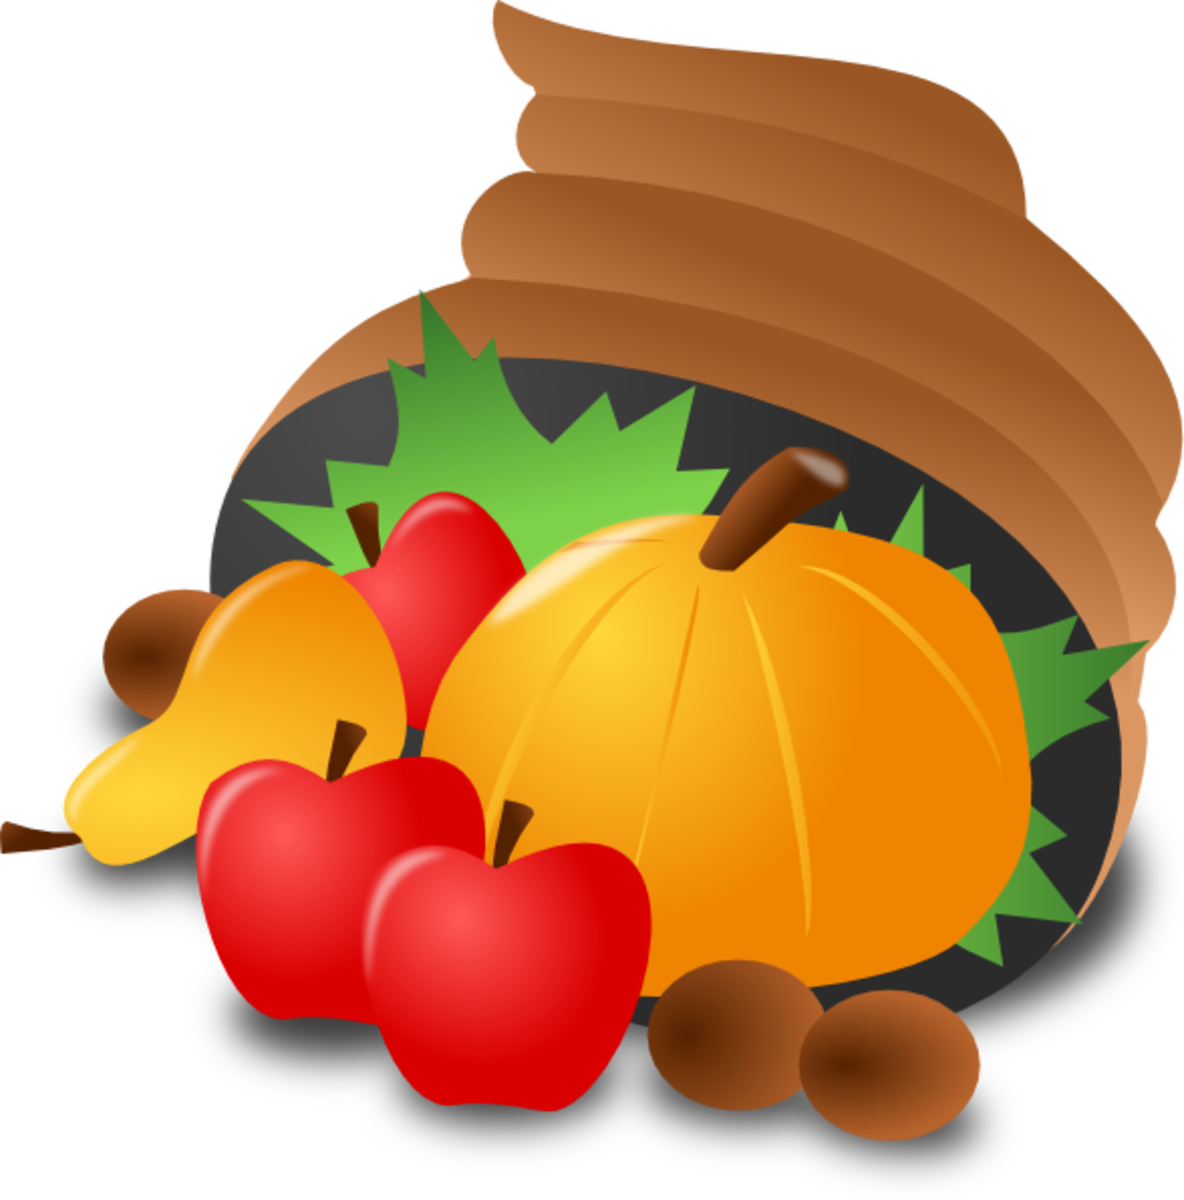 Cornucopia with Pumpkin, Fruit and Nuts